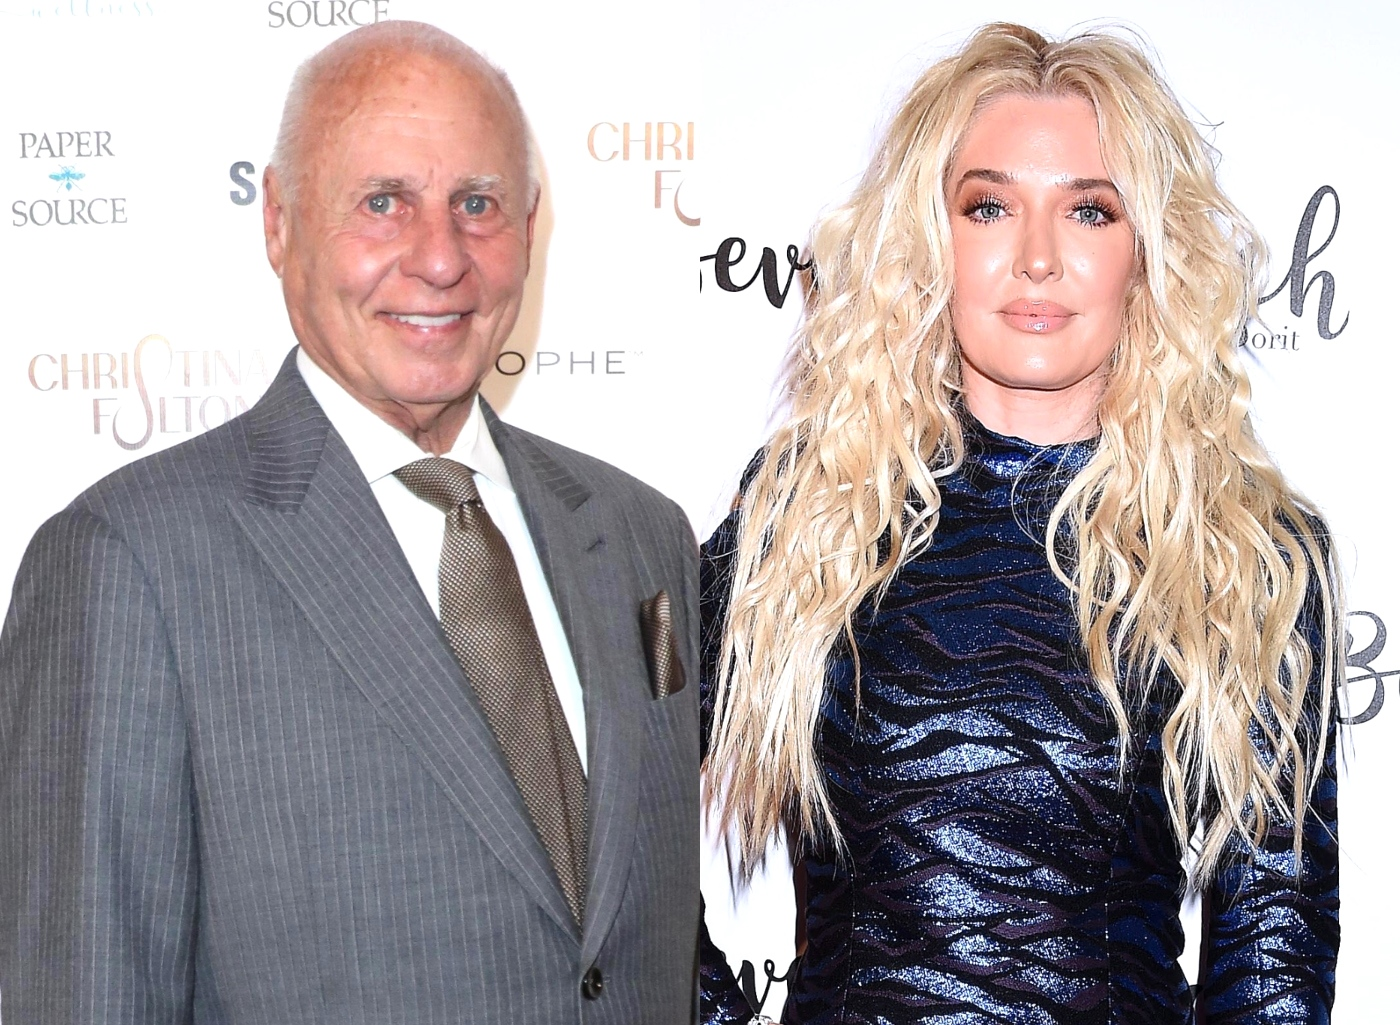 """Erika Jayne's Brother-in-Law Claims Thomas Girardi is Mentally """"Incompetent"""" and """"Unable to Act for Himself"""" Amid Fraud Case, Wants To Be Appointed as RHOBH Attorney's Guardian"""